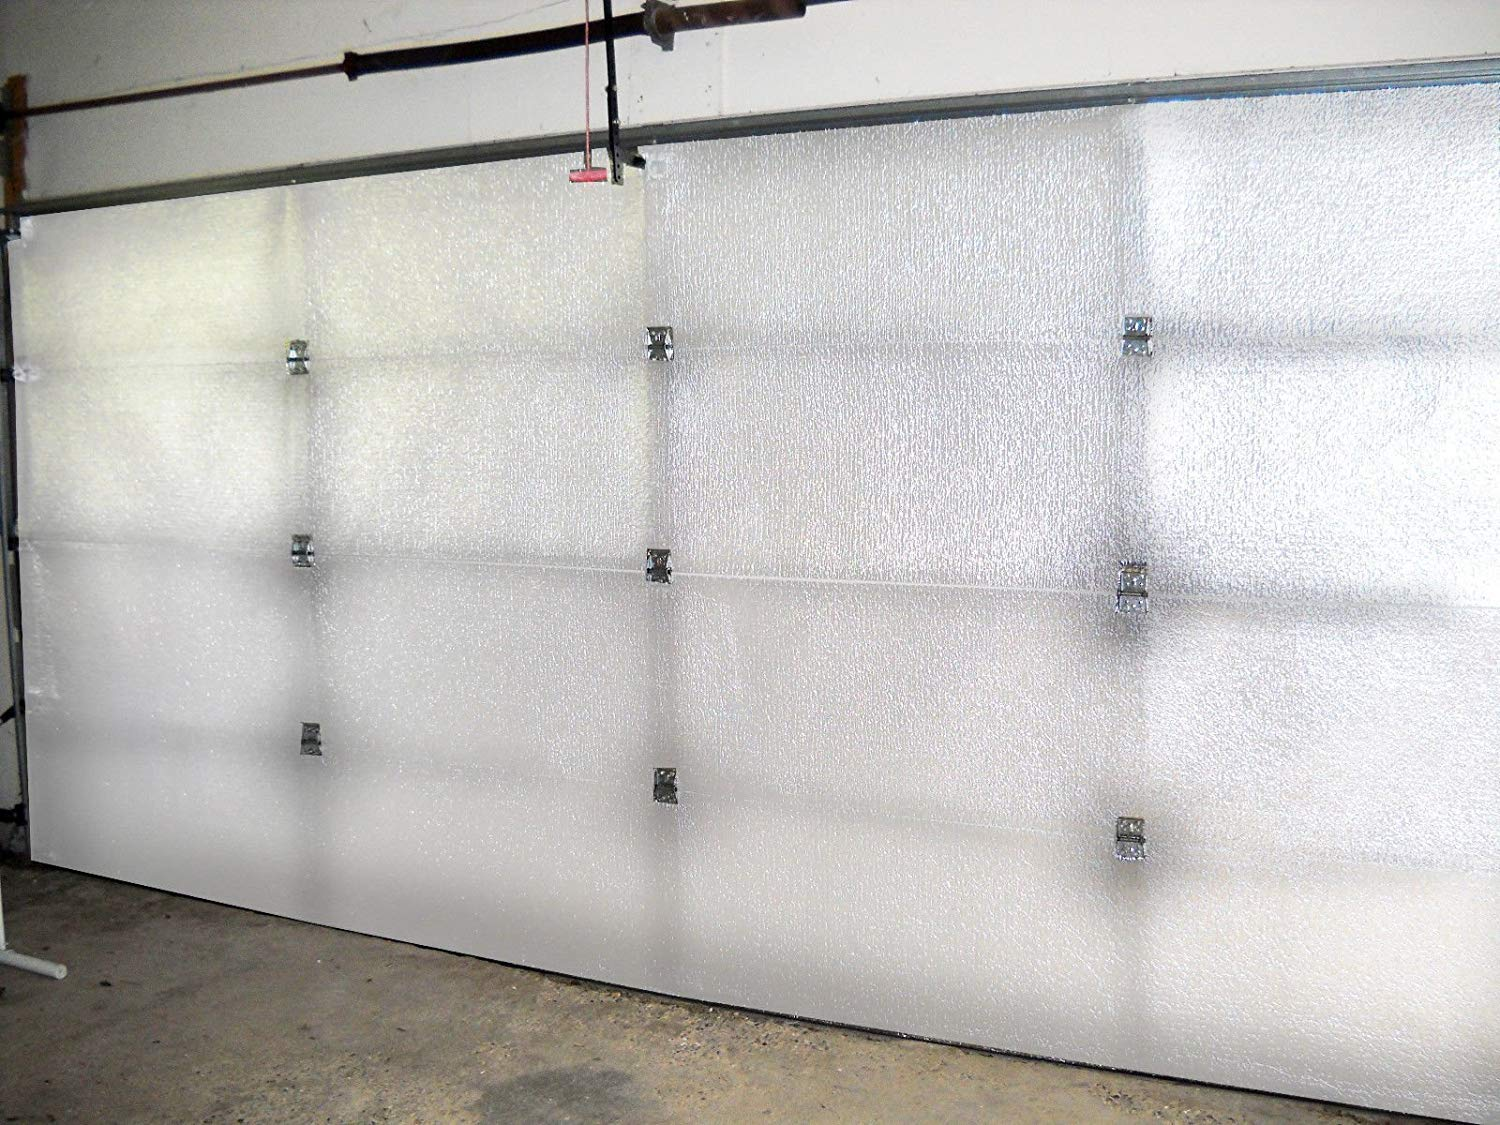 NASA TECH White Reflective Foam Core 2 Car Garage Door Insulation Kit 18FT (WIDE) x 8FT (HIGH) R Value 8.0 Made in USA New and Improved Heavy Duty Double Sided Tape (ALSO FITS 18X7) by US Energy Products